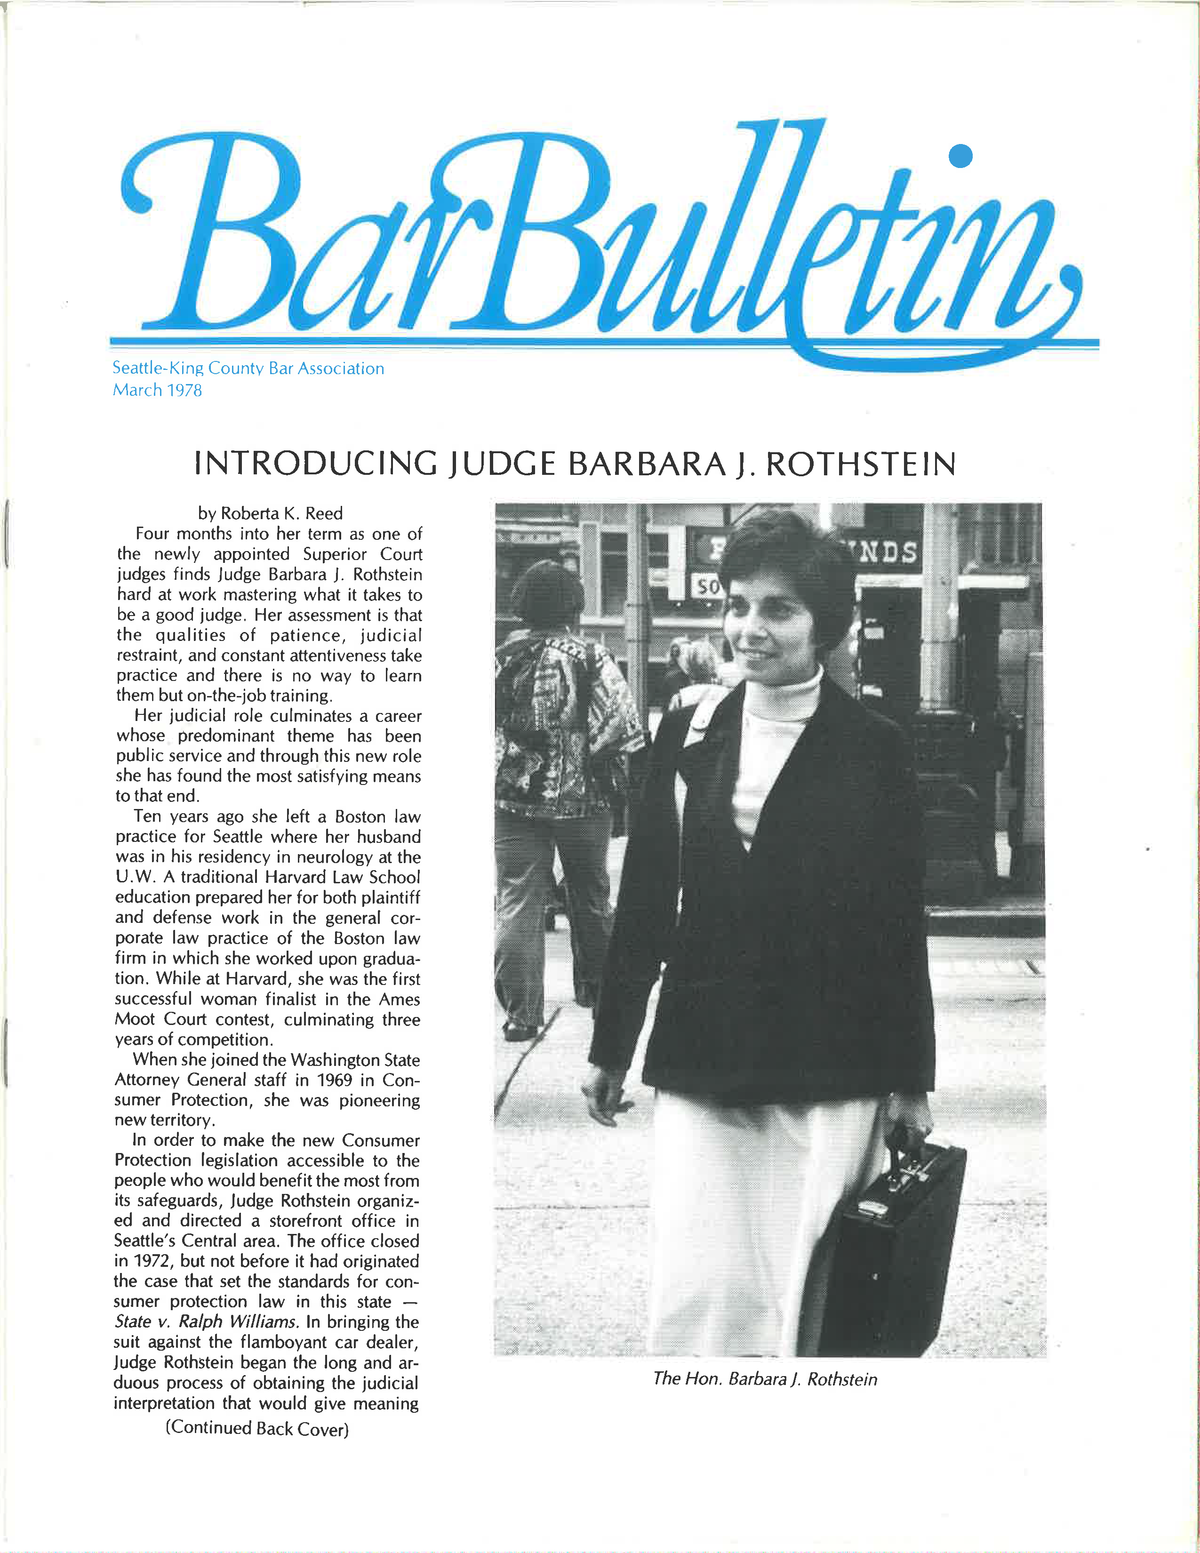 Justice Rothstein, featured in the Bar Bulletin, March 1978.